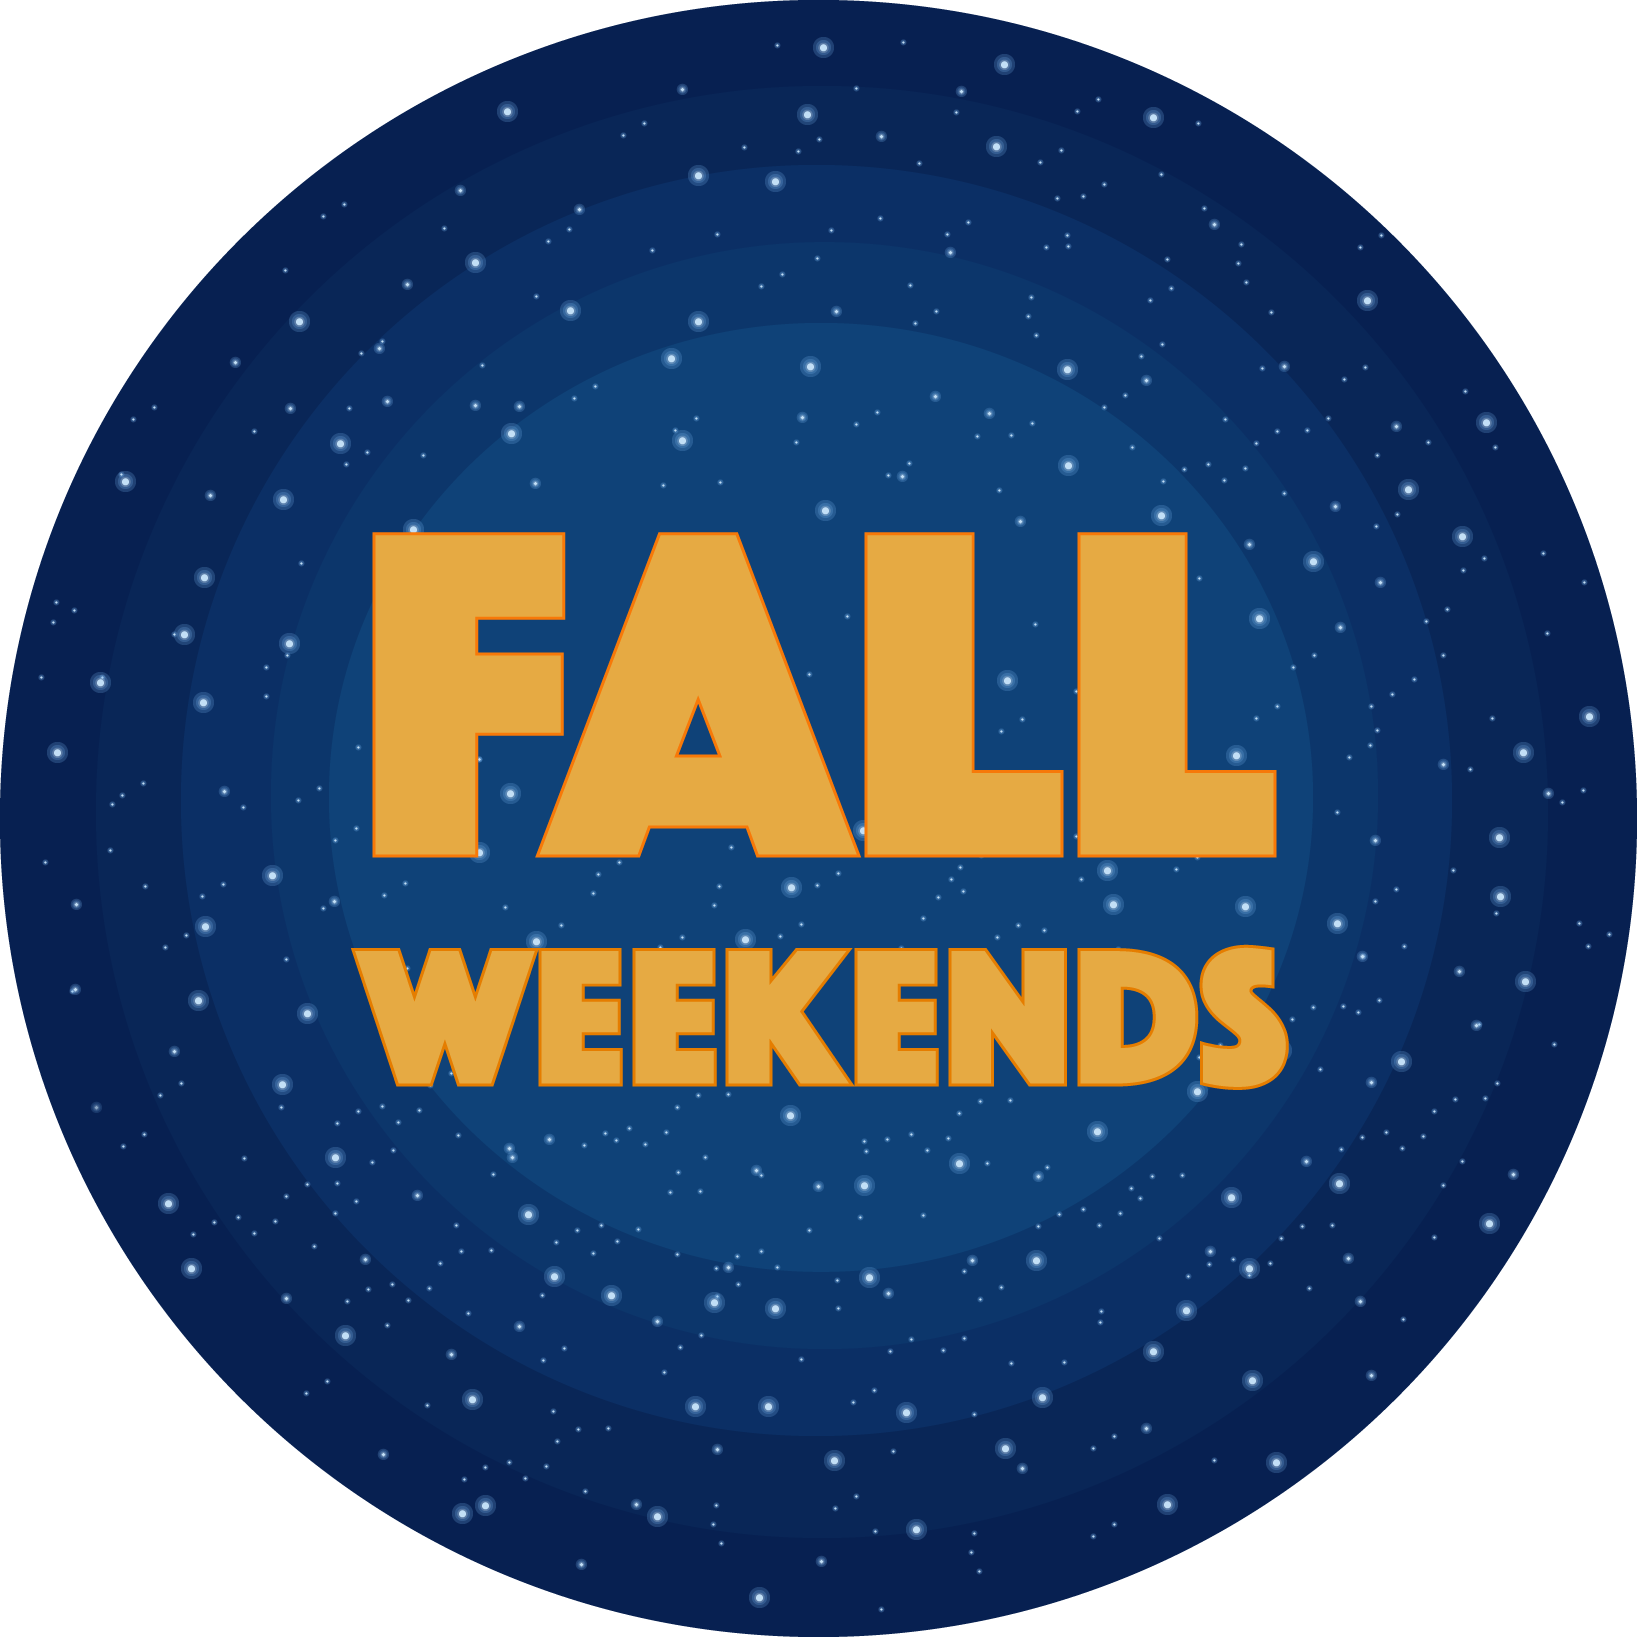 Fall Weekends 2019